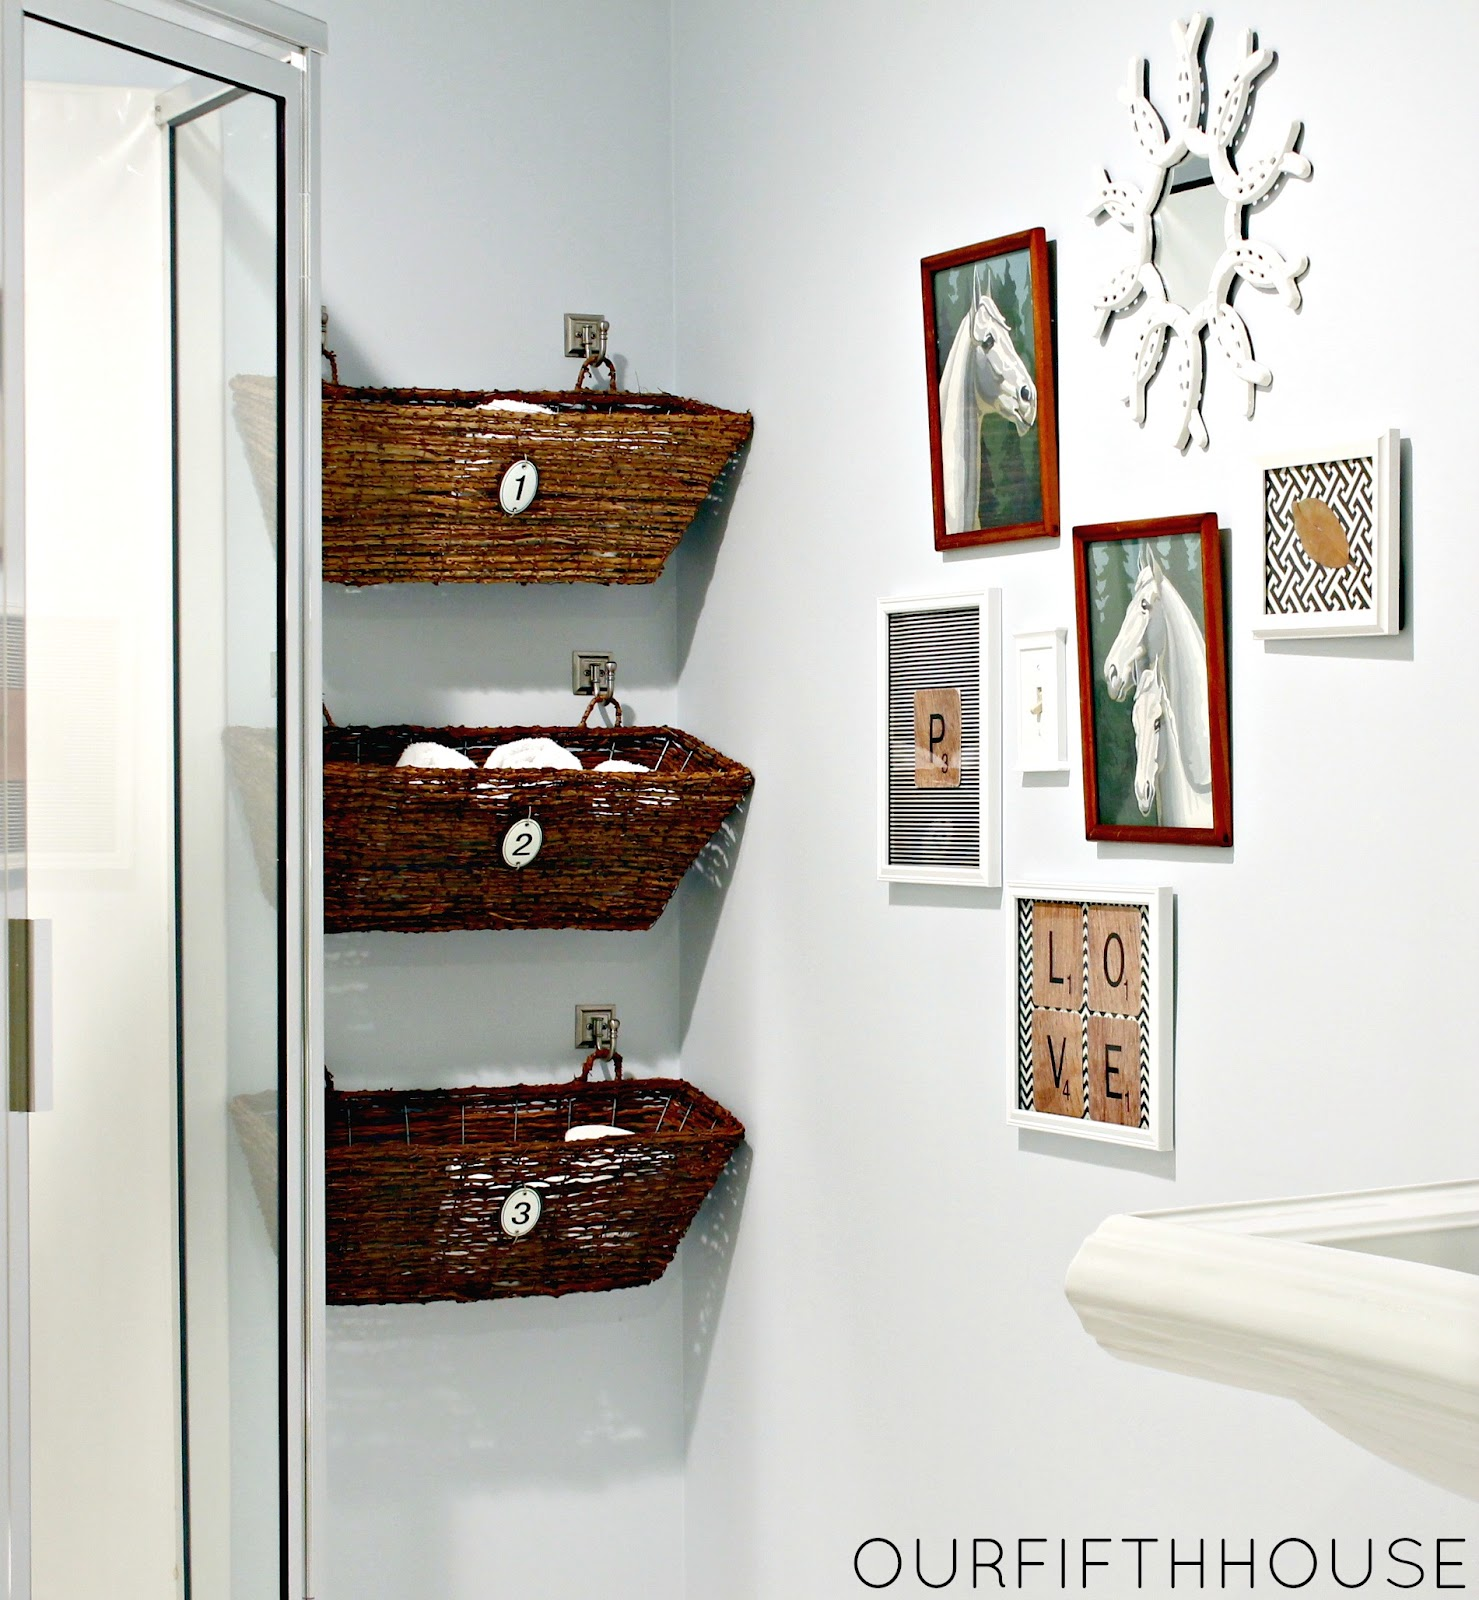 Window Box Bathroom Storage Perfect For A Small Bathroom Our - Bathroom cabinets for small spaces for small bathroom ideas